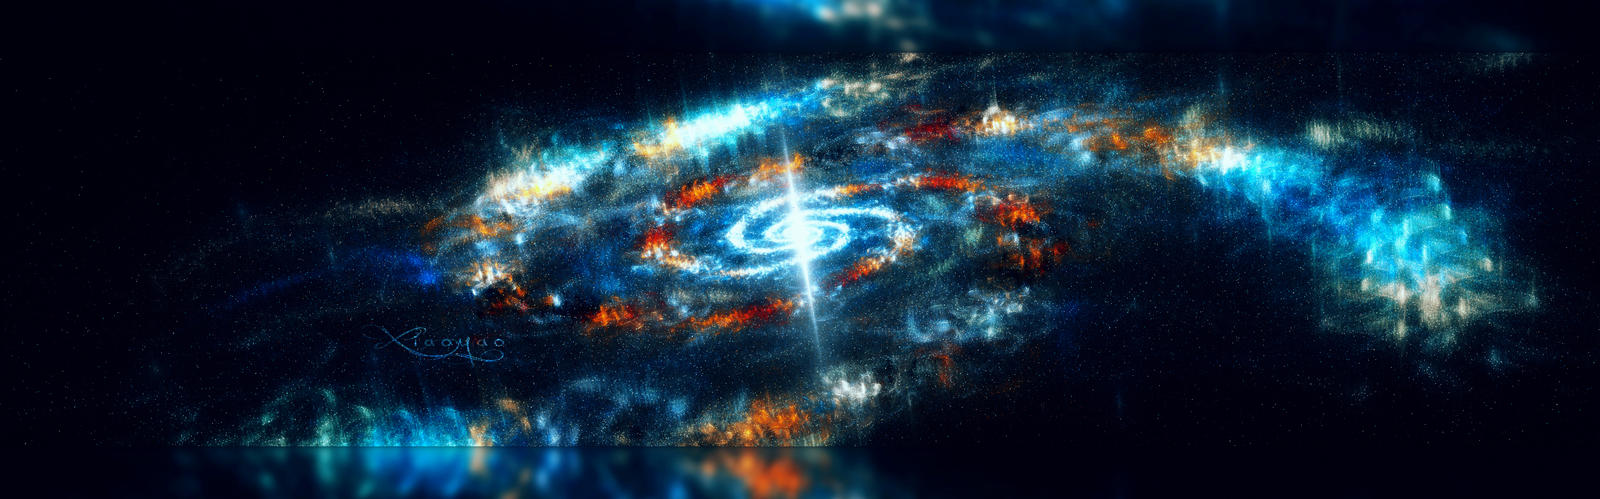 Galaxy by fractist